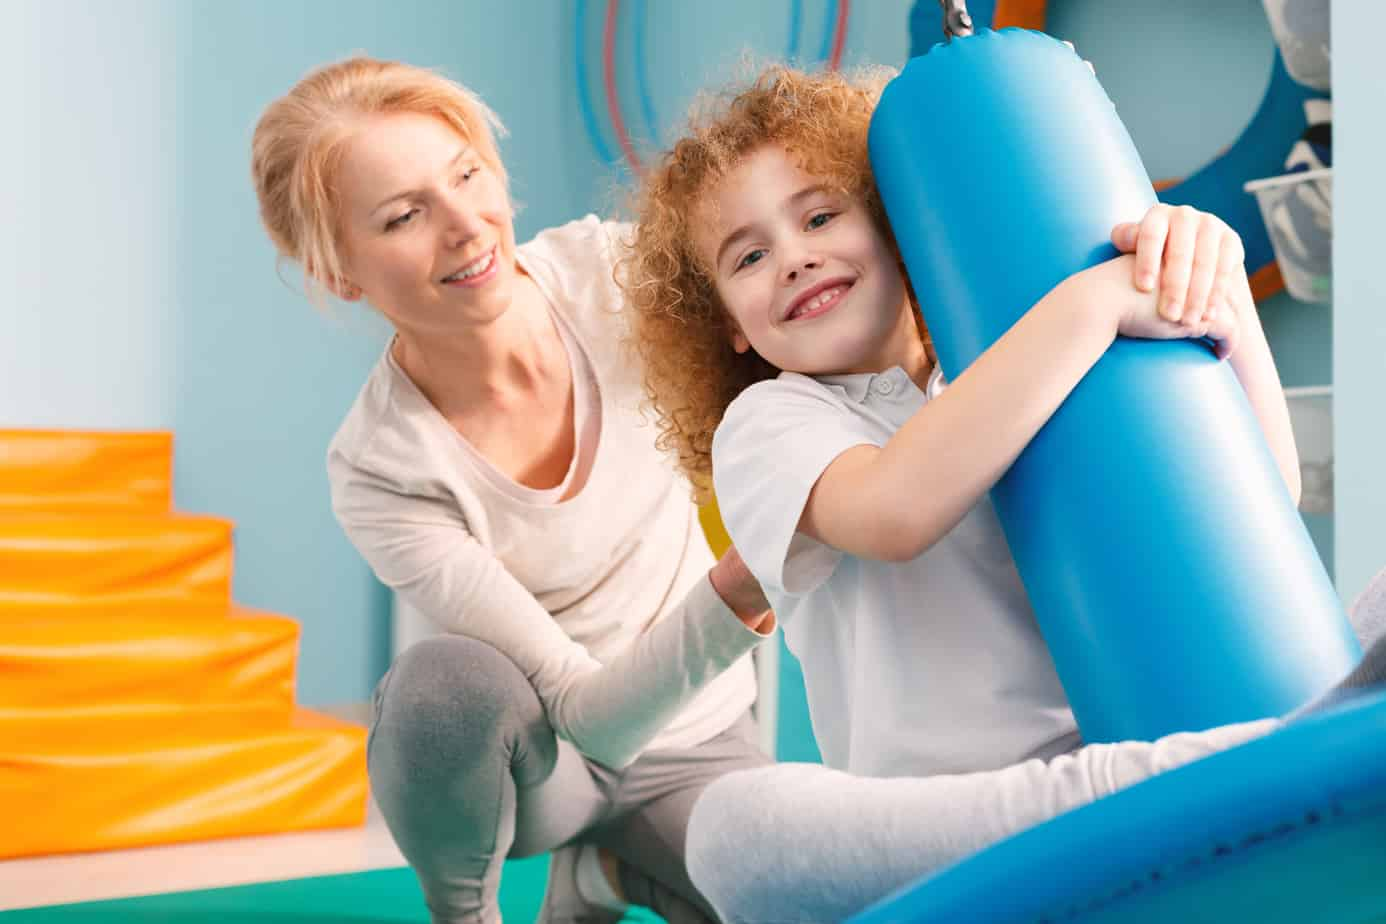 Smiling therapist watching a boy on disc swing during therapy session